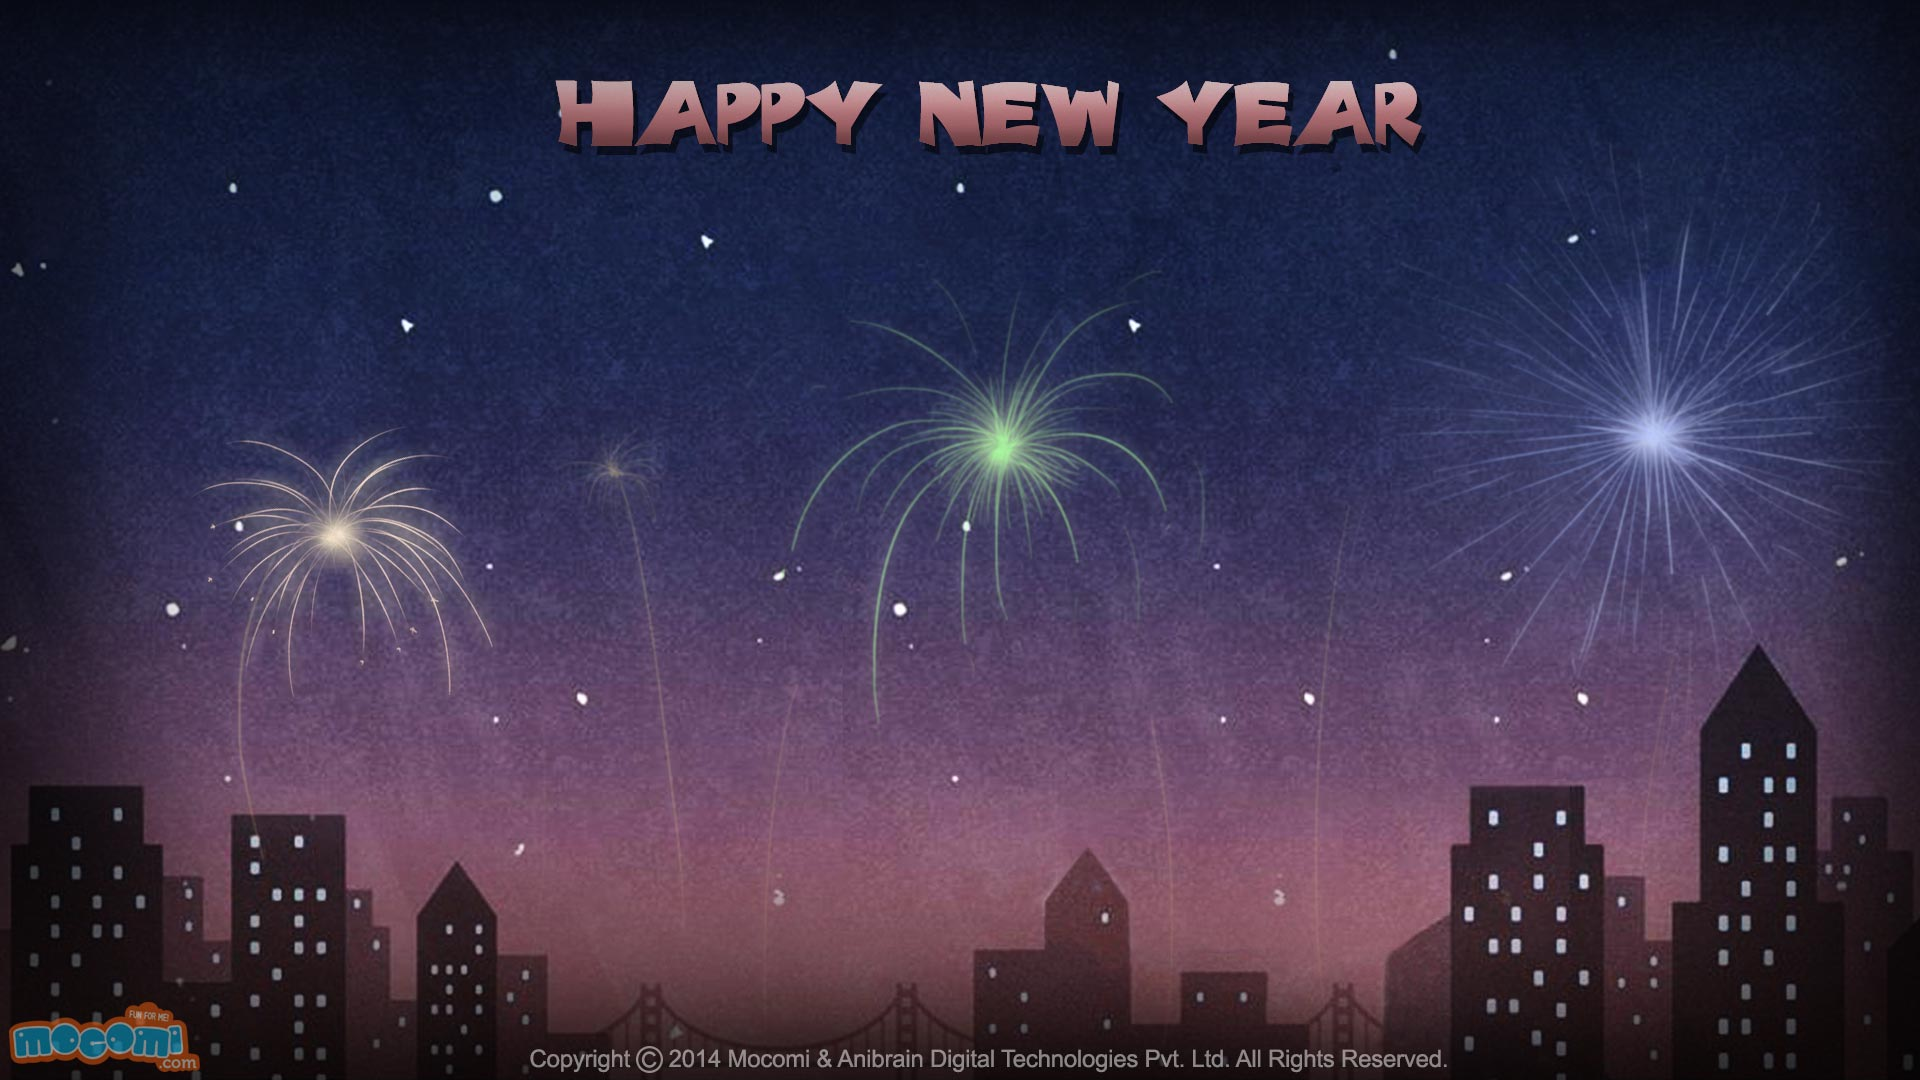 Happy New Year Wallpaper- 12